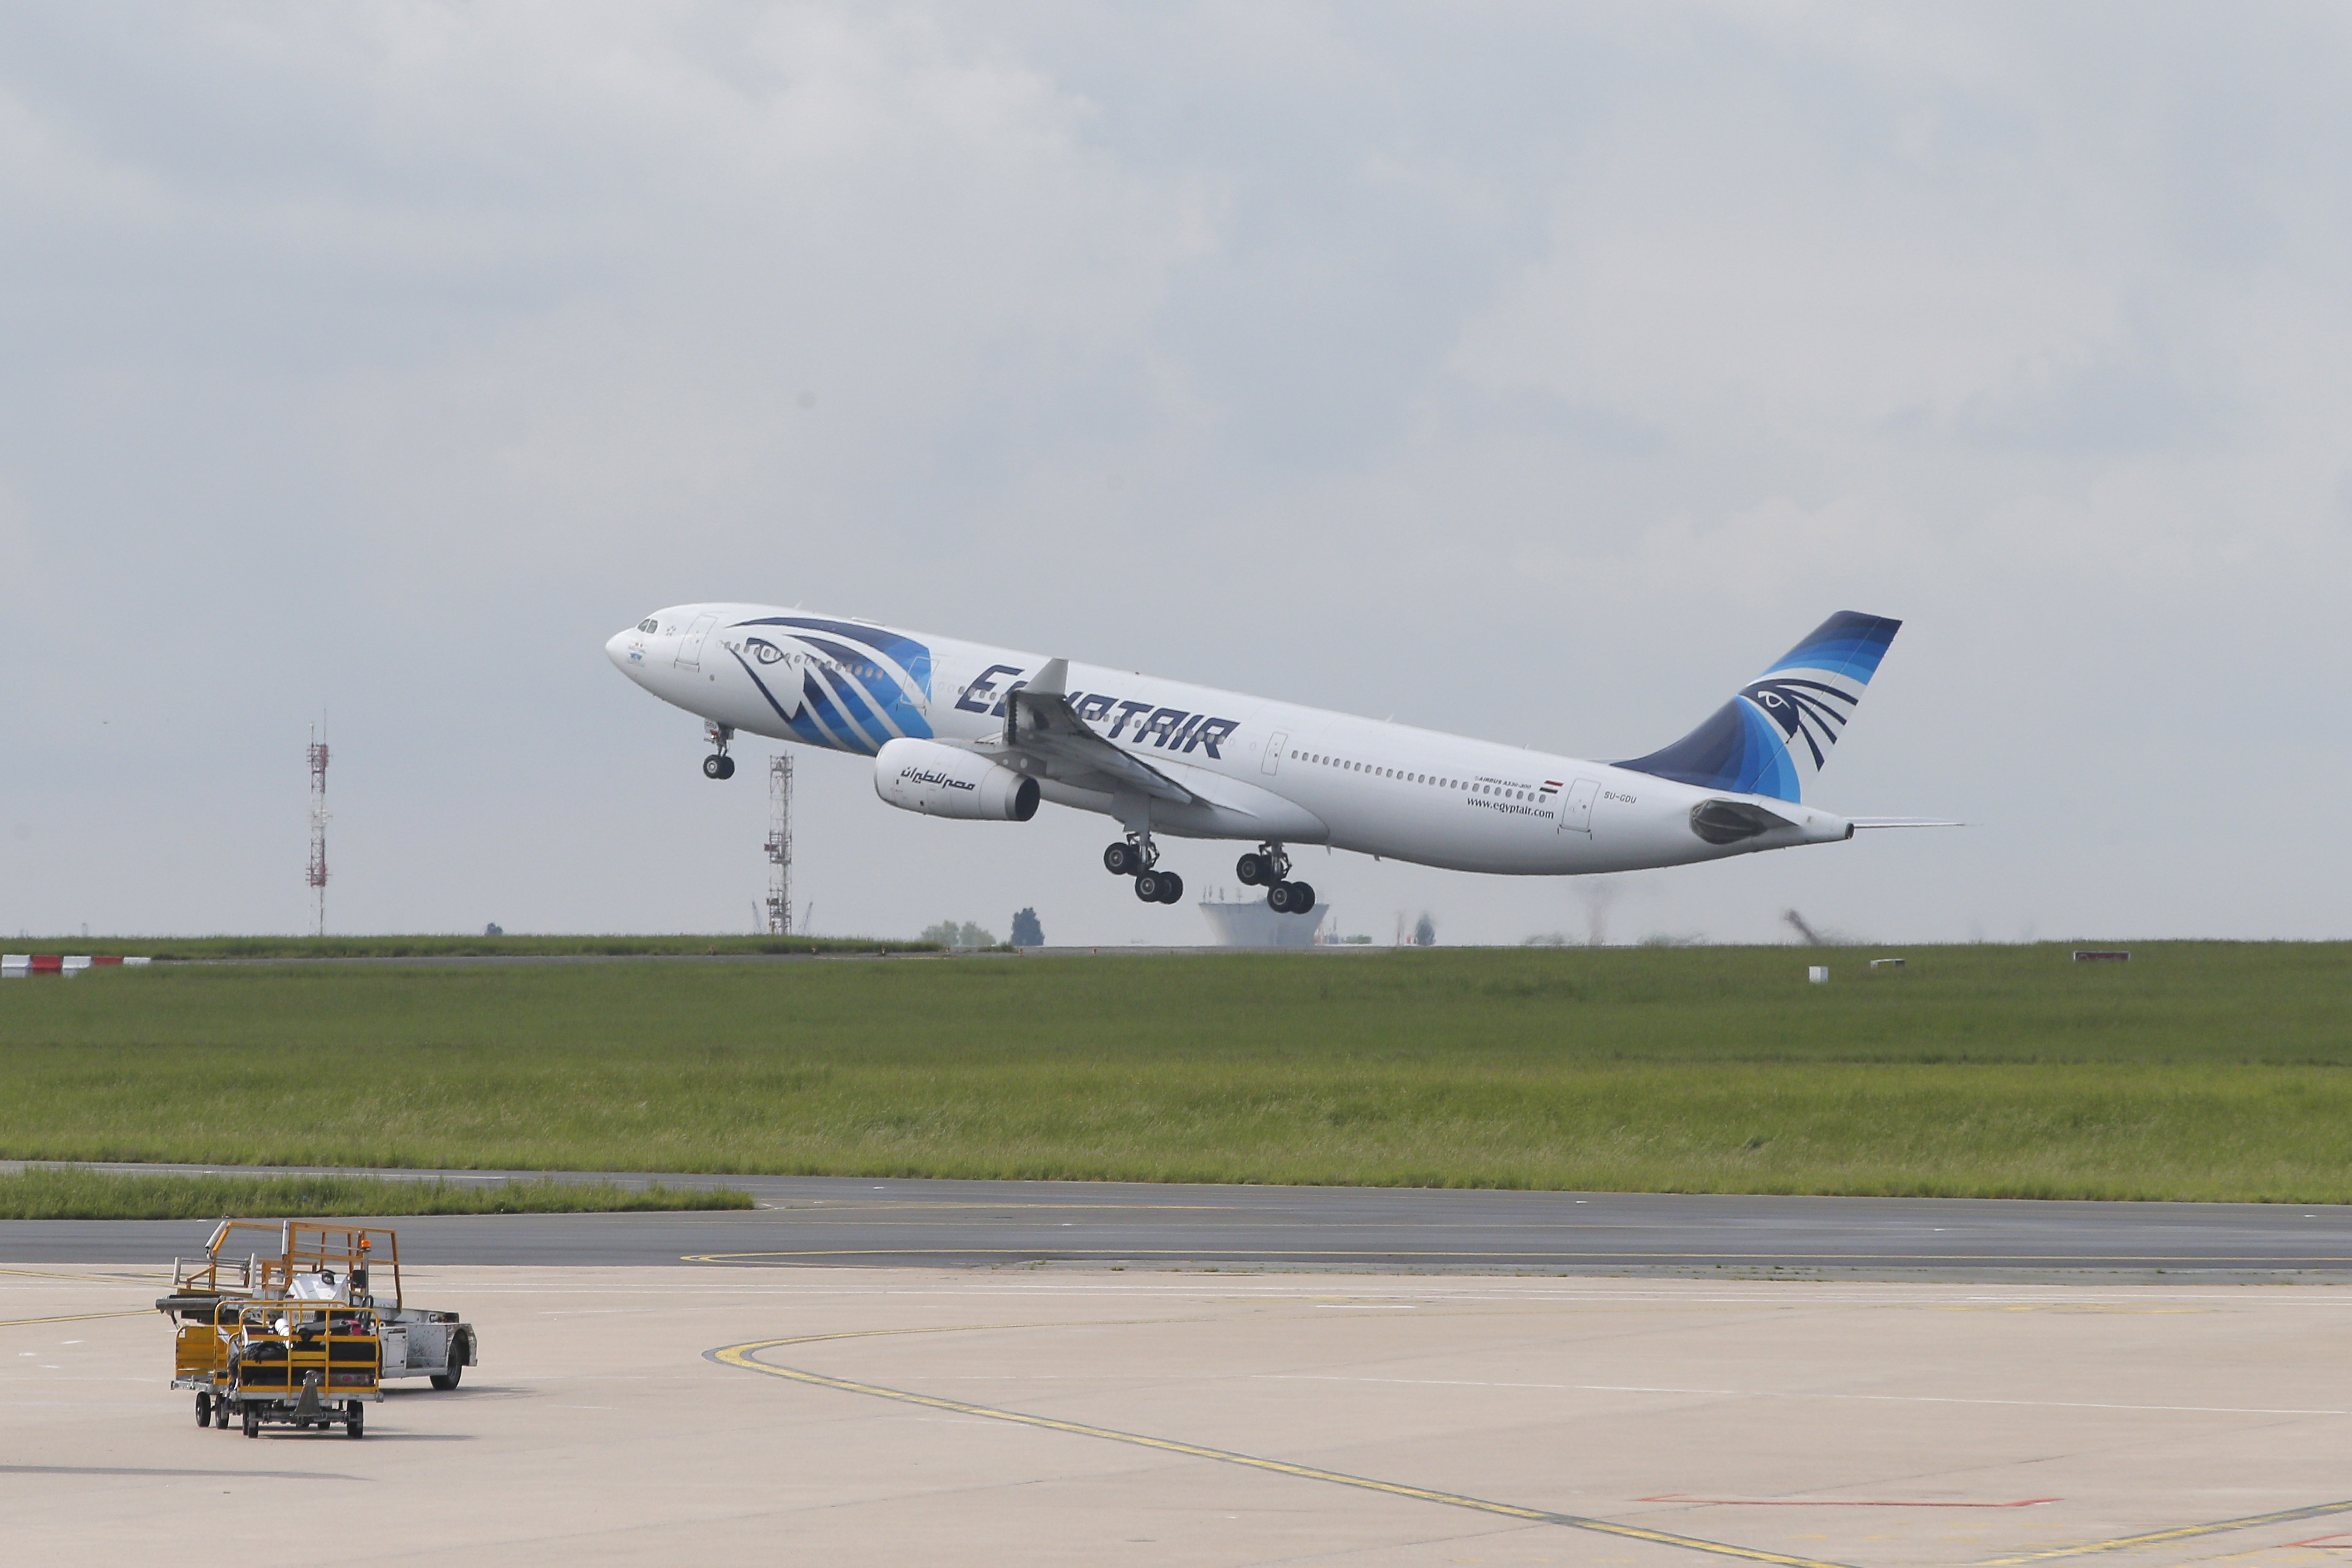 Report: EgyptAir Pilot Spoke to Air Traffic Controllers About Smoke 'Minutes Before Flight MS804 Crash'